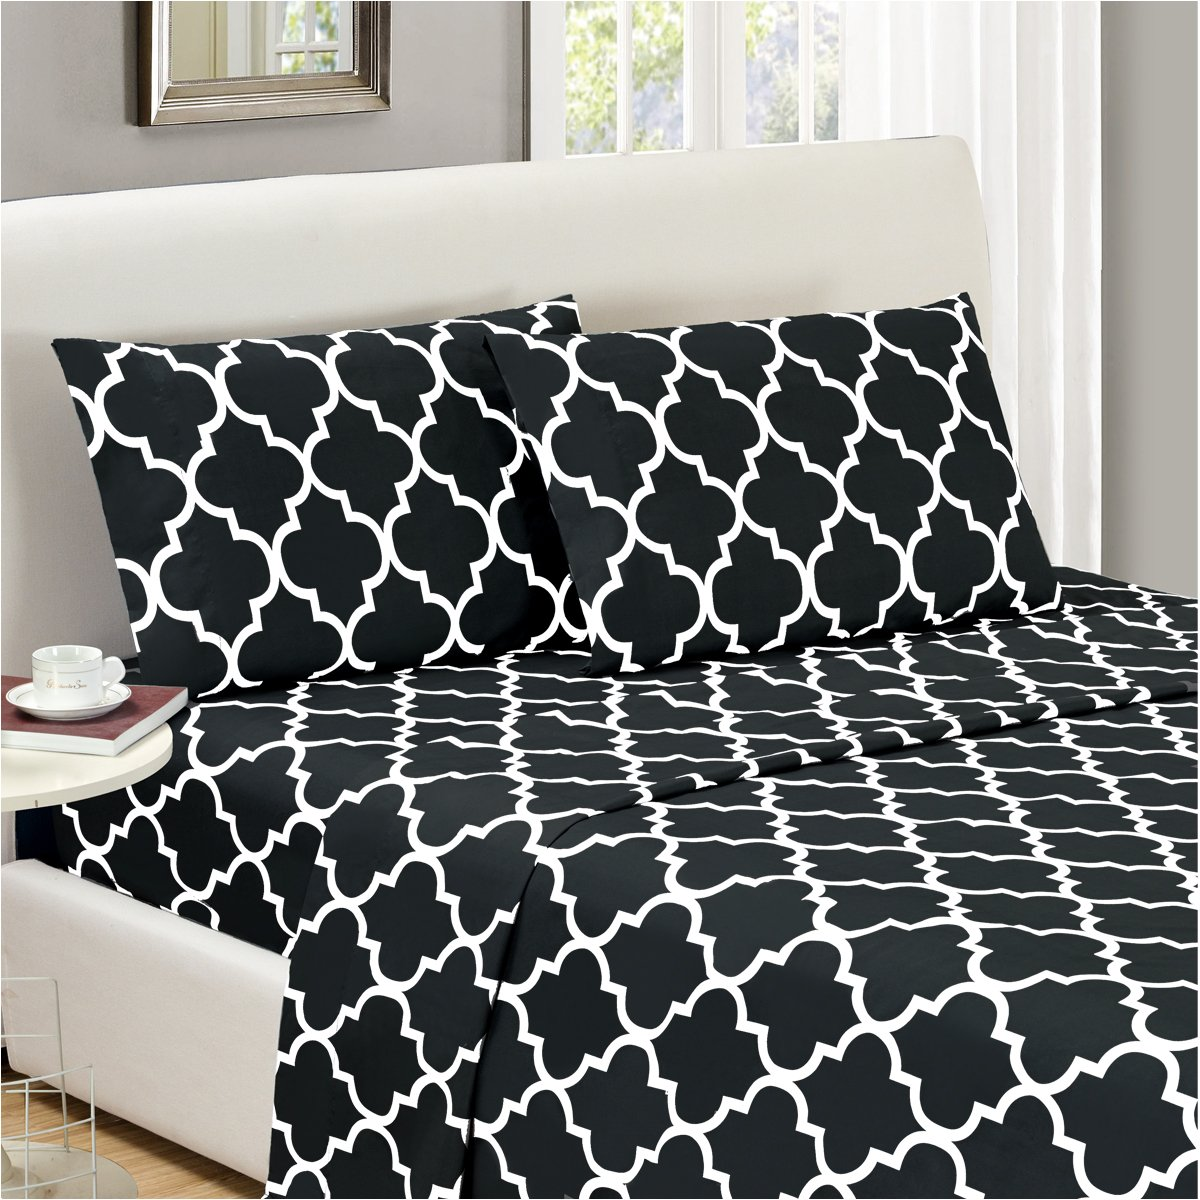 Mellanni Bed Sheet Set Twin-Black - HIGHEST QUALITY Brushed Microfiber Printed Bedding